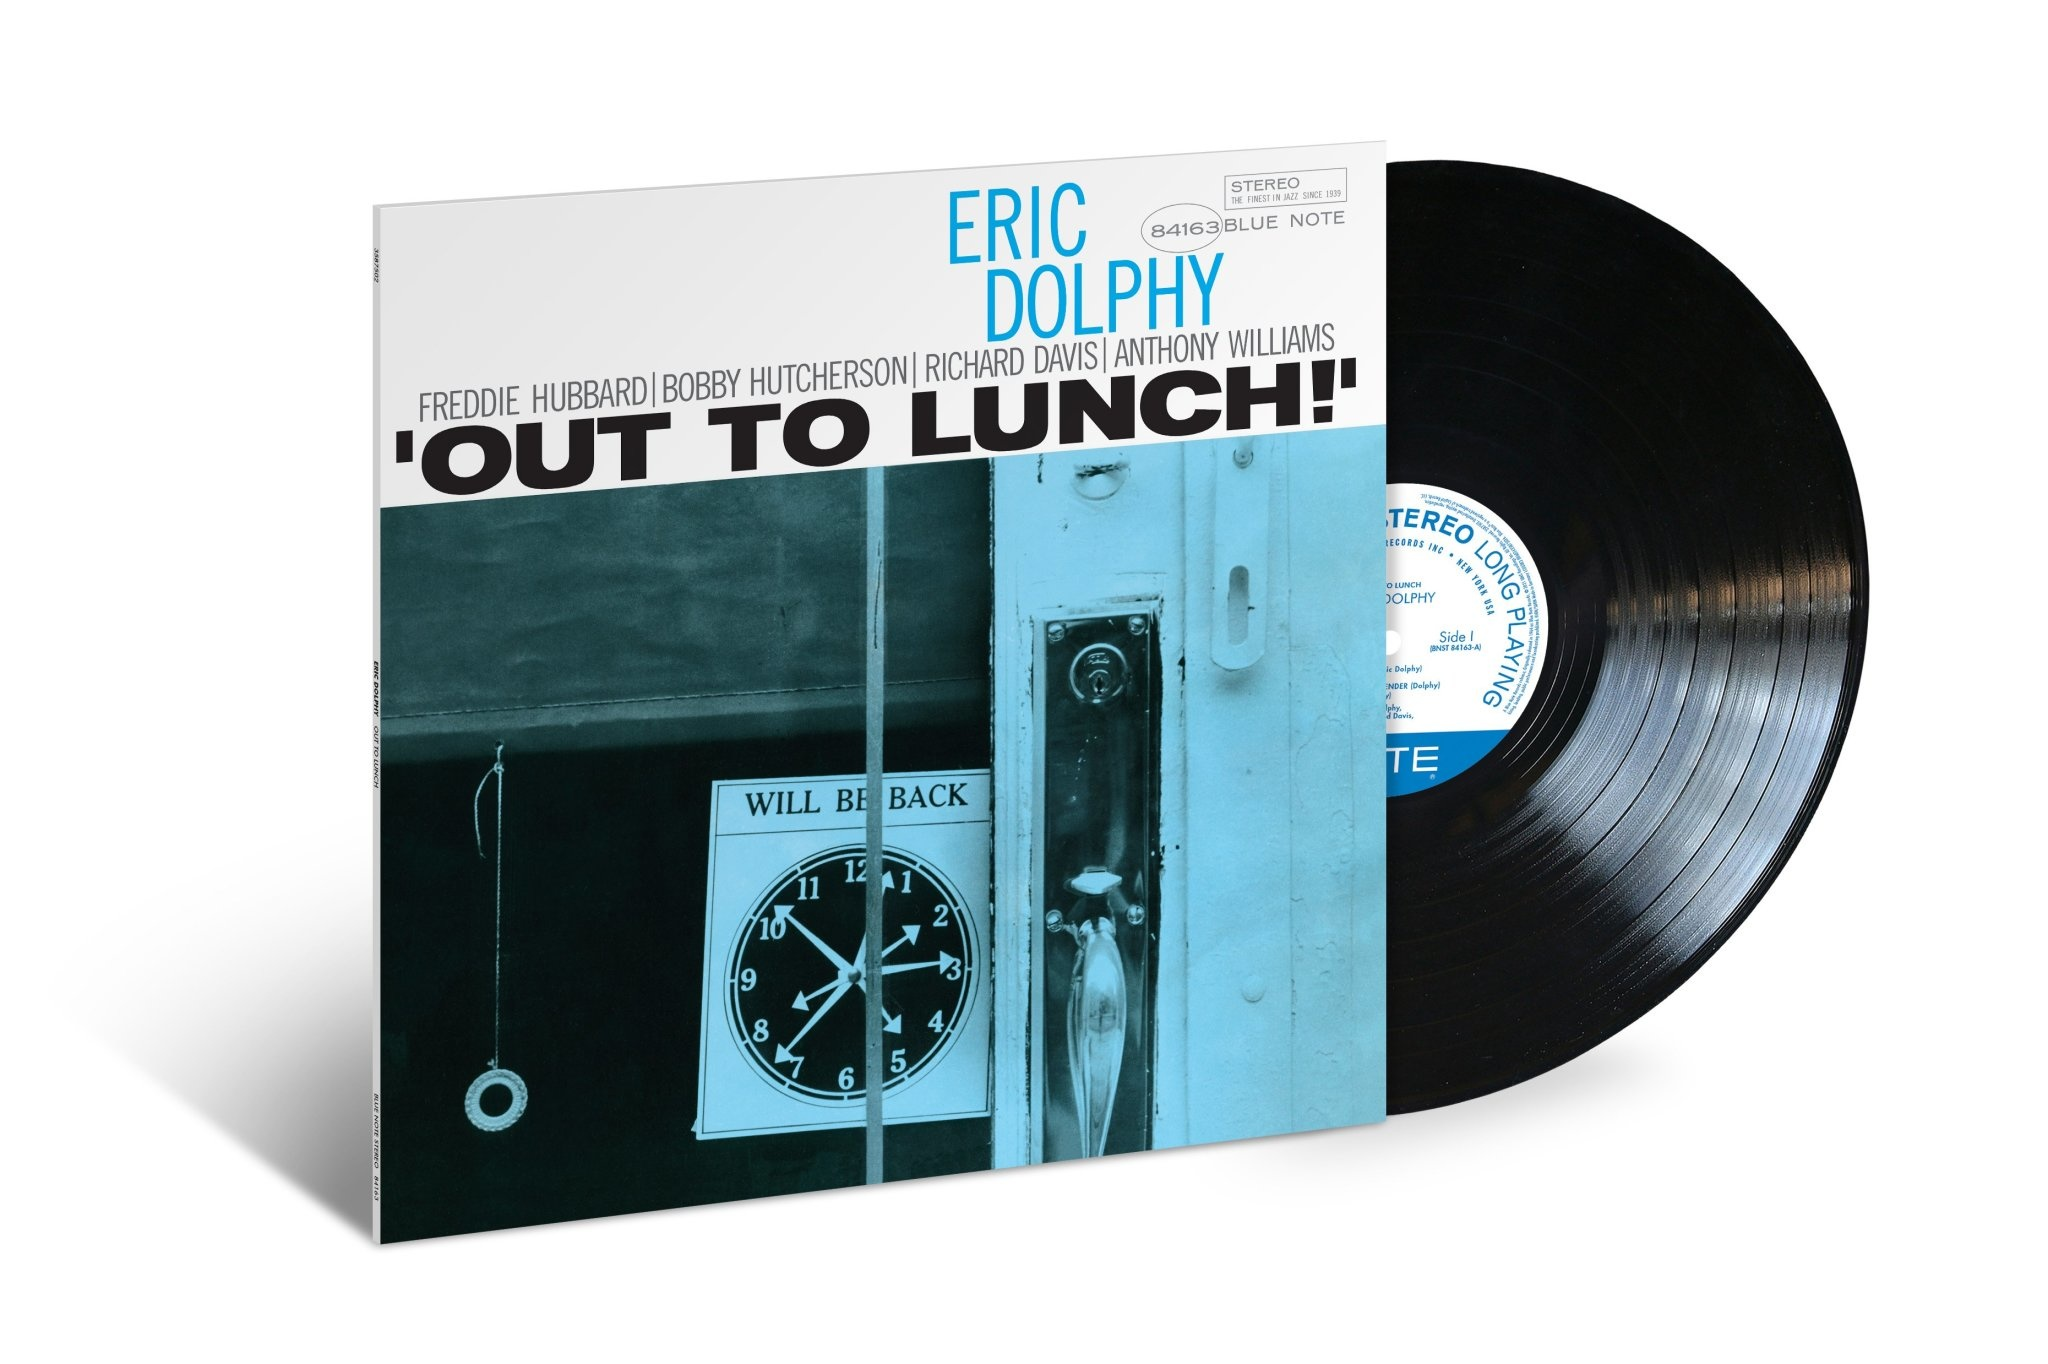 Blue Note Eric Dolphy - Out To Lunch